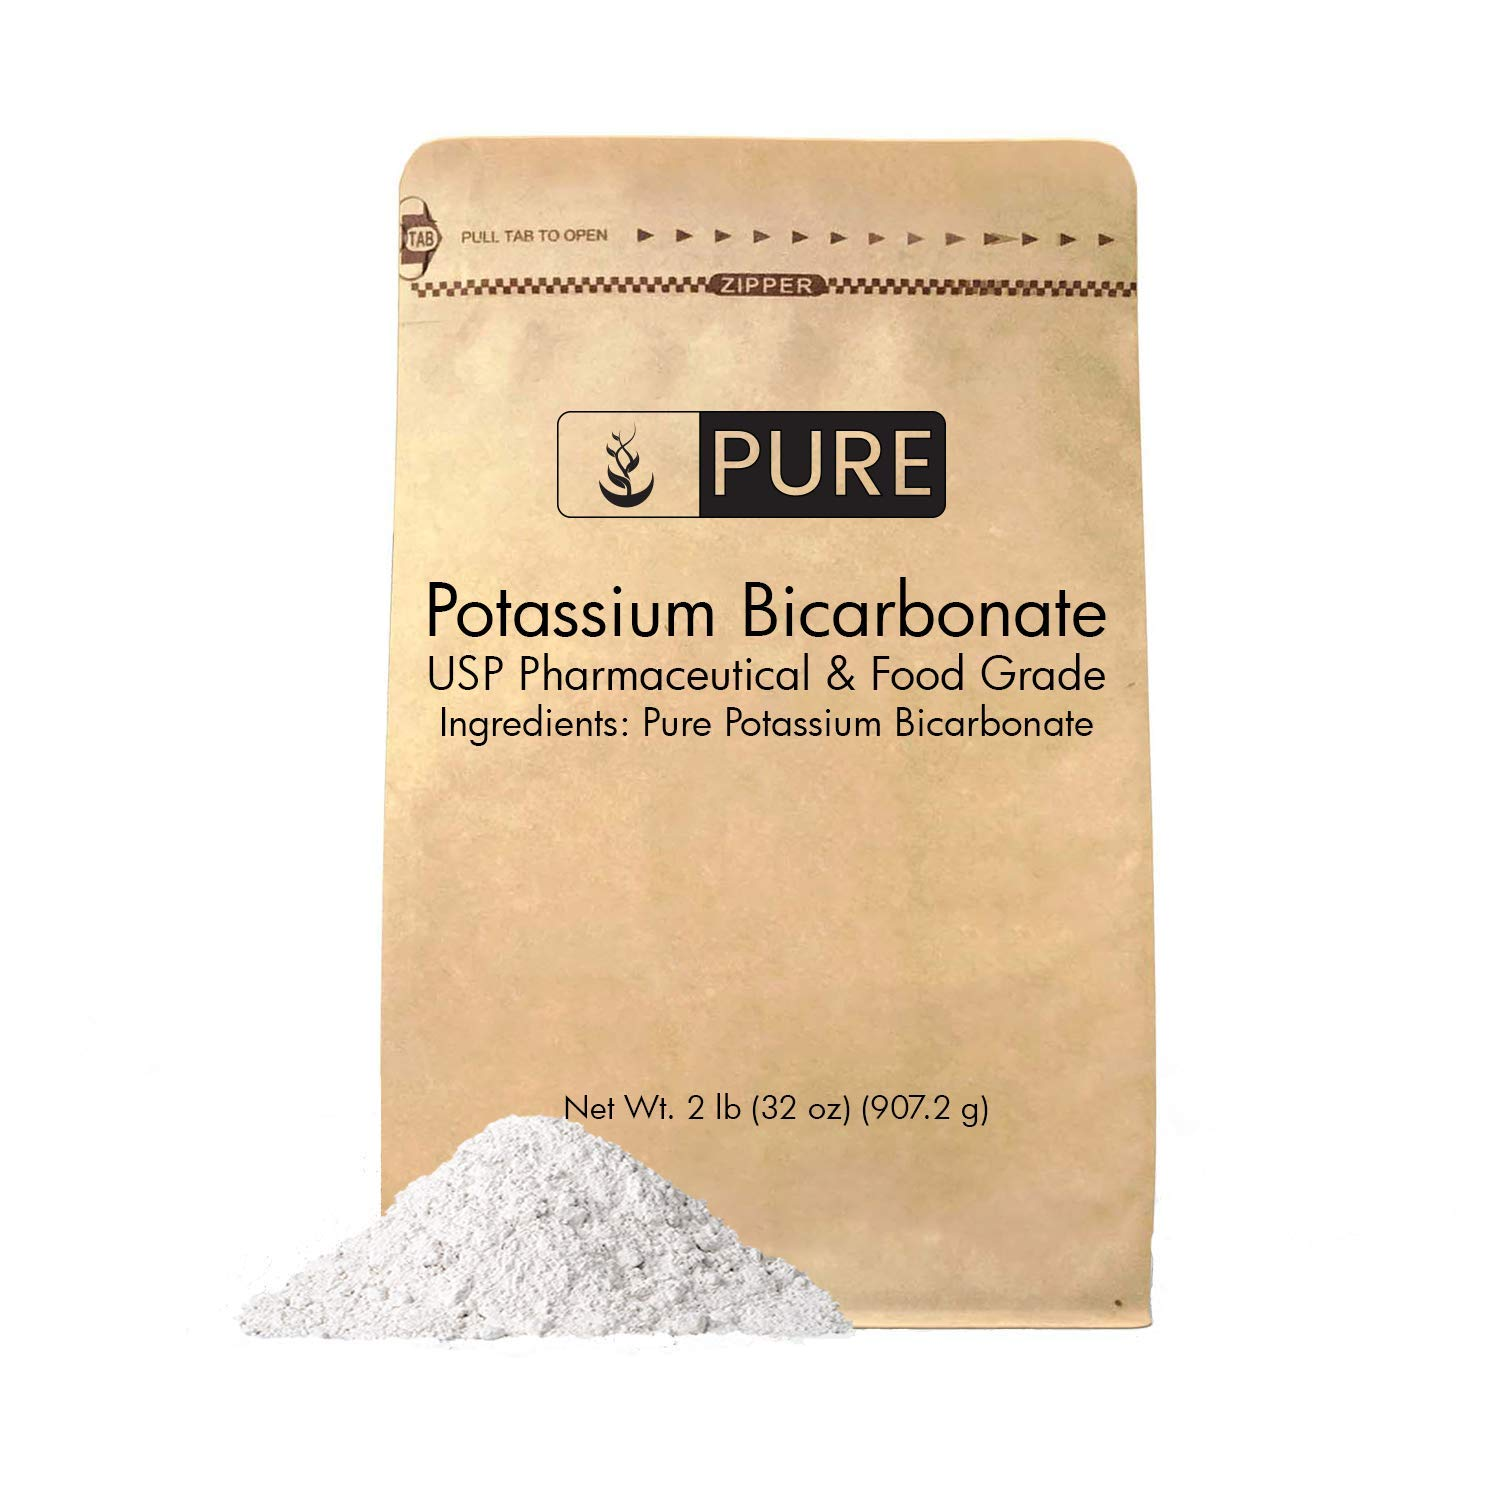 Potassium Bicarbonate ( 2 lb.) by Pure Organic Ingredients, Natural, Highest Purity, Food Grade